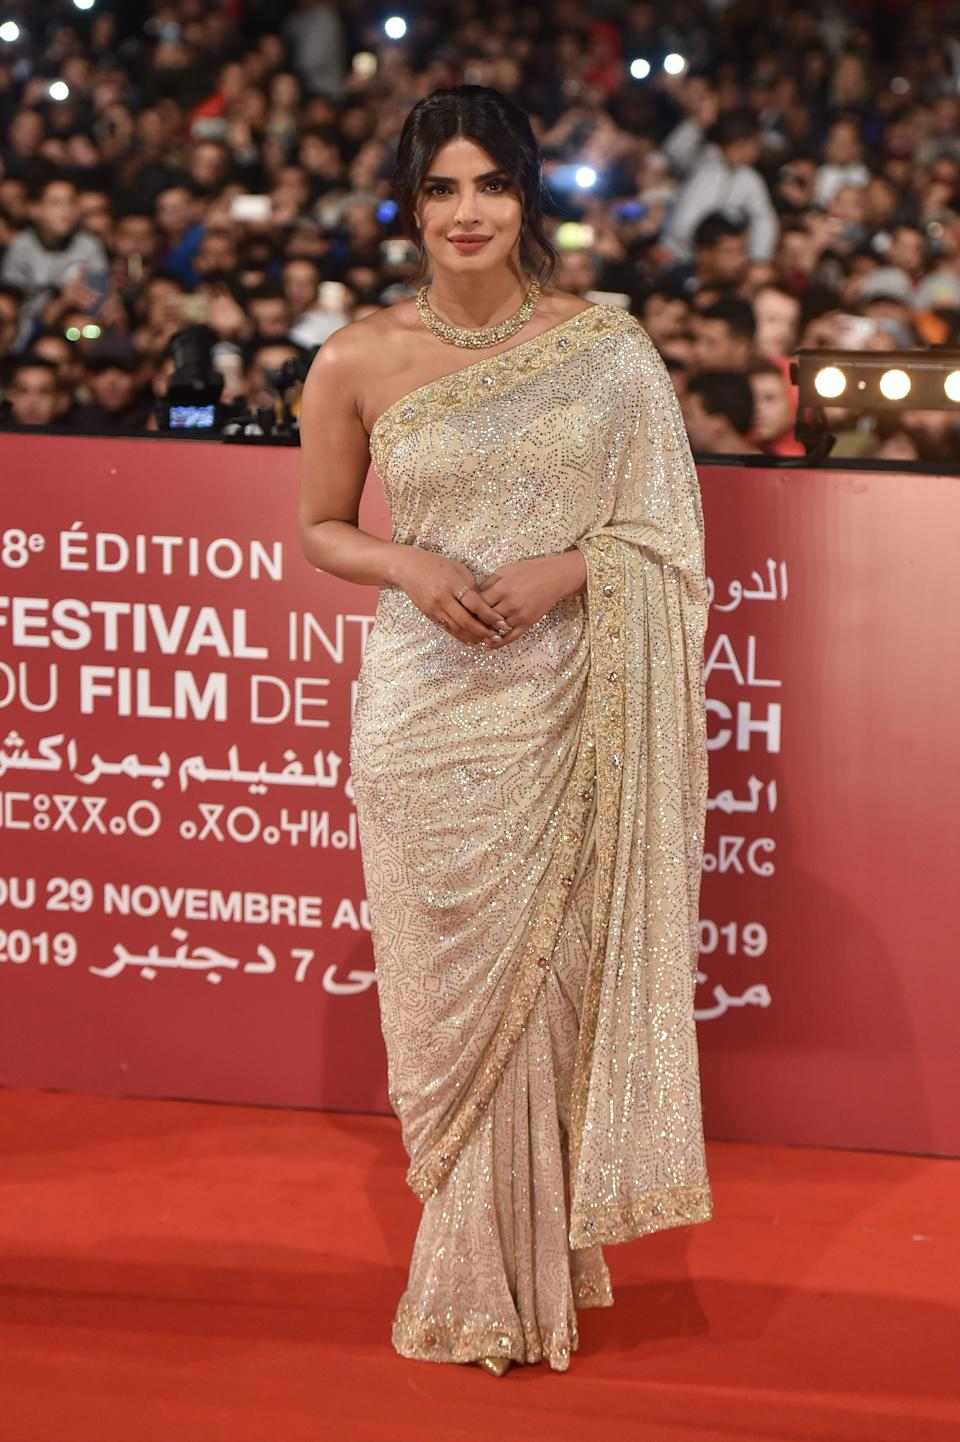 MARRAKECH, MOROCCO - DECEMBER 05: Priyanka Chopra attends her Tribute at Jemaa El Fnaa Place during the 18th Marrakech International Film Festival -Day Seven- on December 05, 2019 in Marrakech, Morocco. (Photo by Stephane Cardinale - Corbis/Corbis via Getty Images)